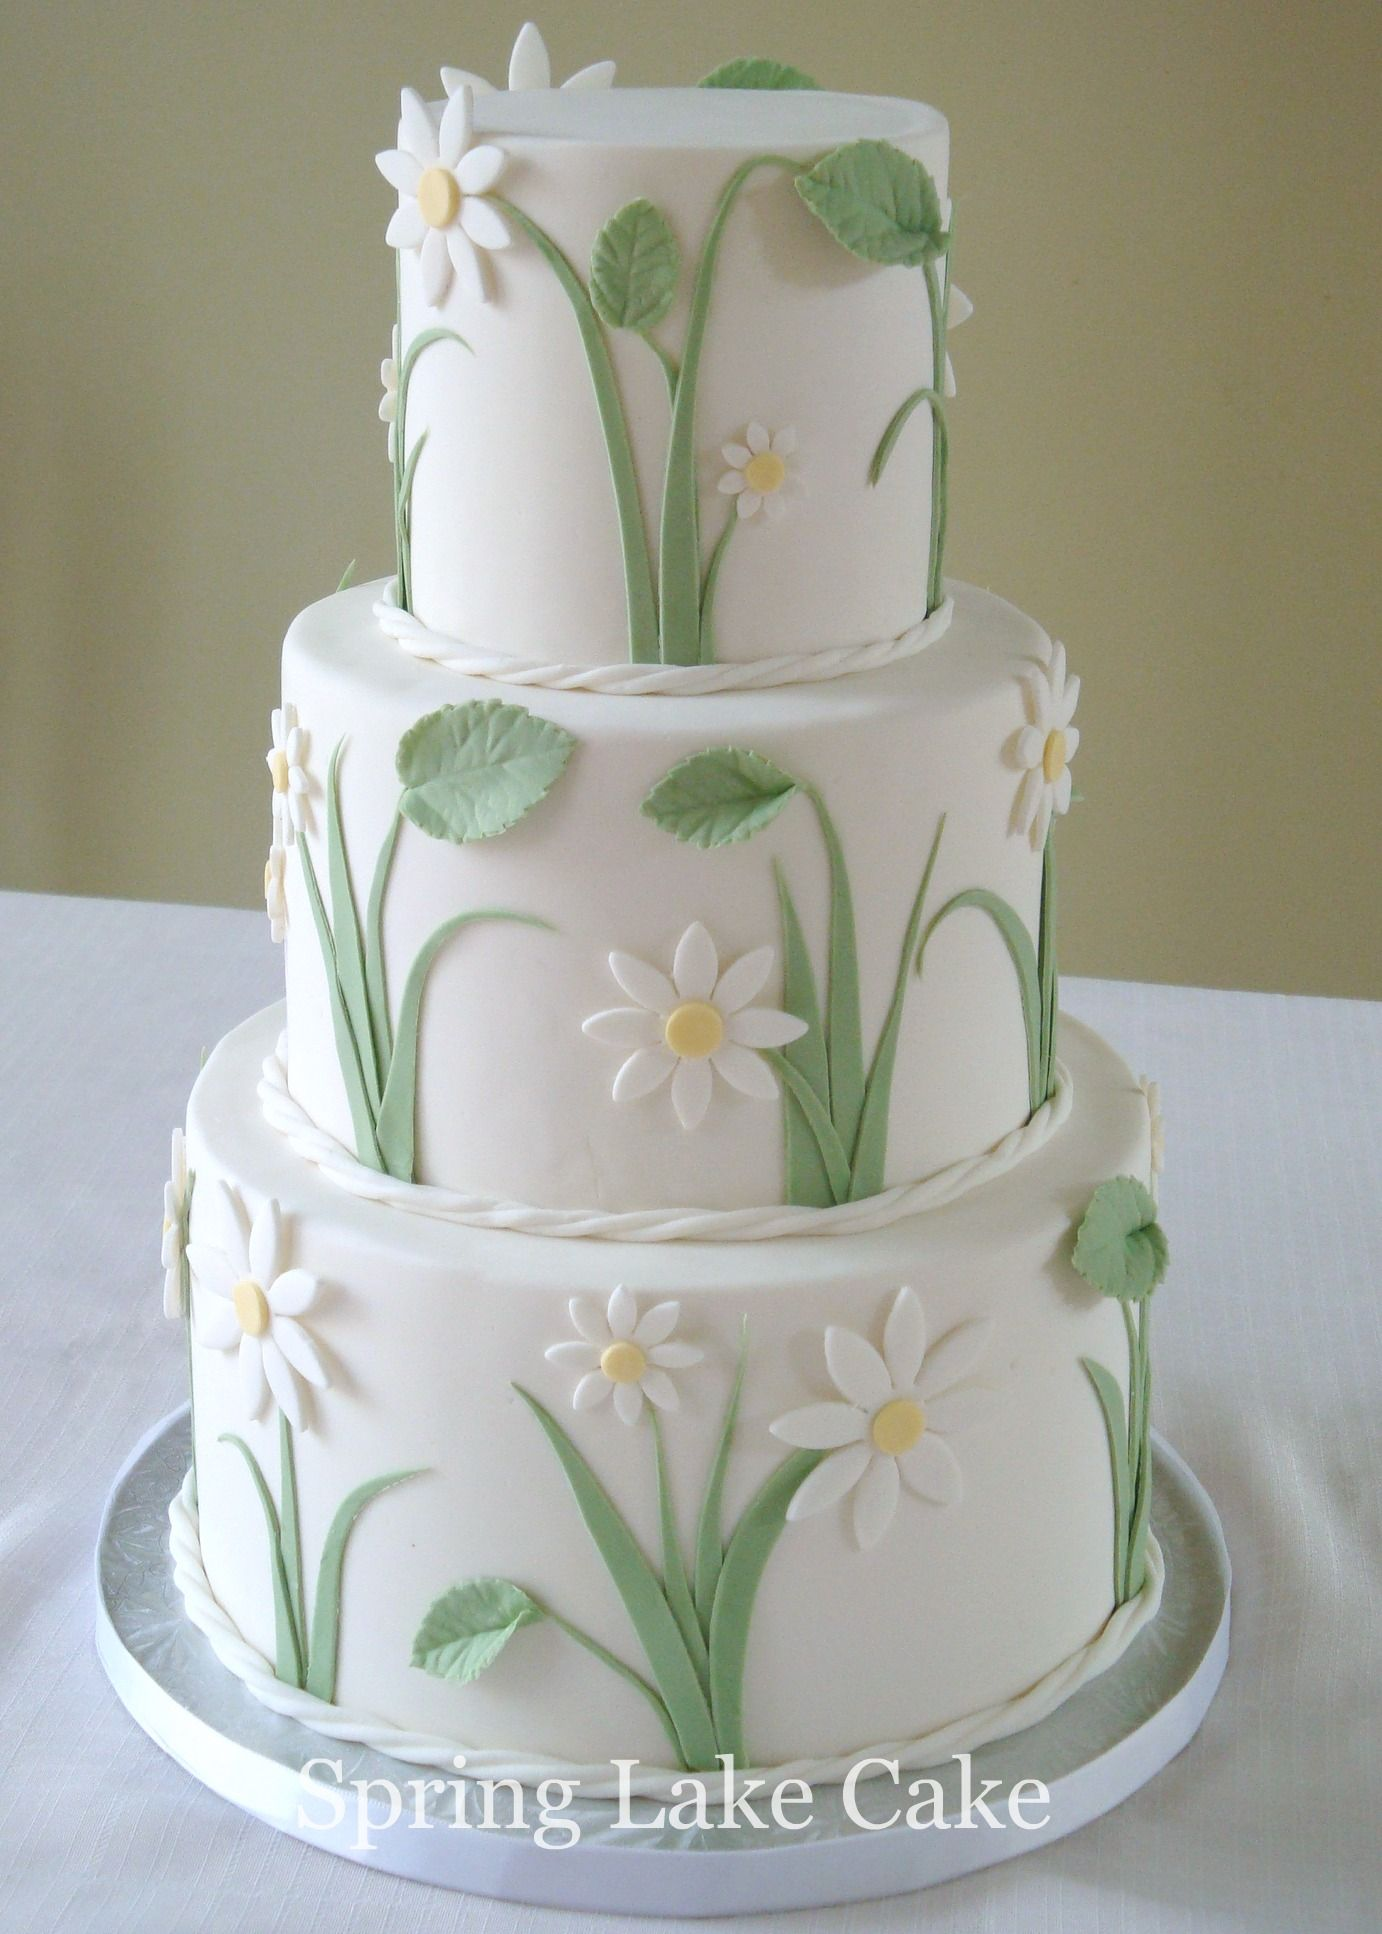 daisy wedding cake wedding cake a small wedding cake 4 6 8 inch 13314